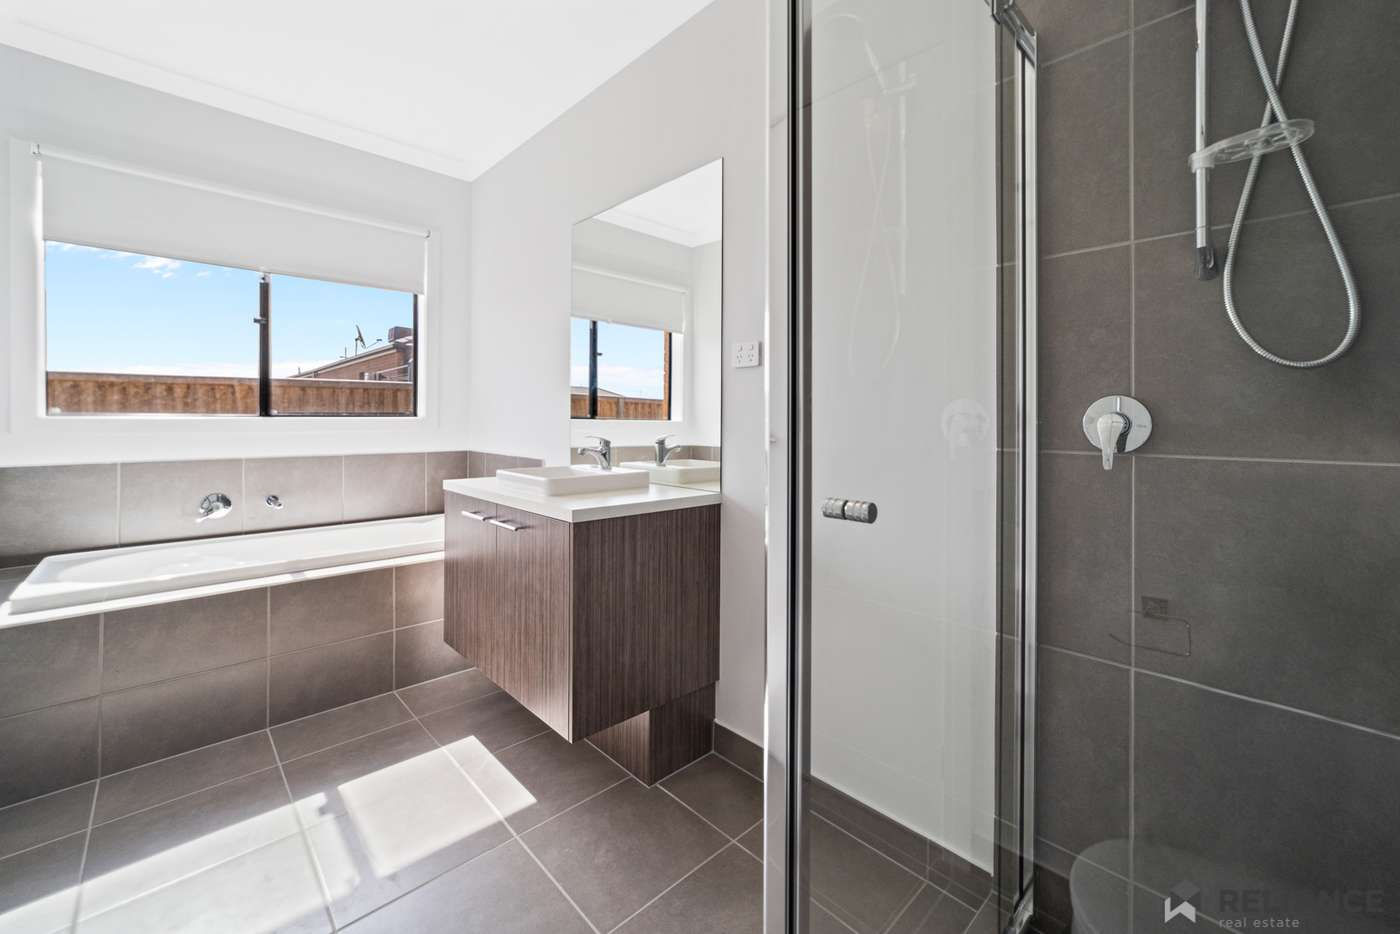 Seventh view of Homely house listing, 18 Ricotta Road, Manor Lakes VIC 3024